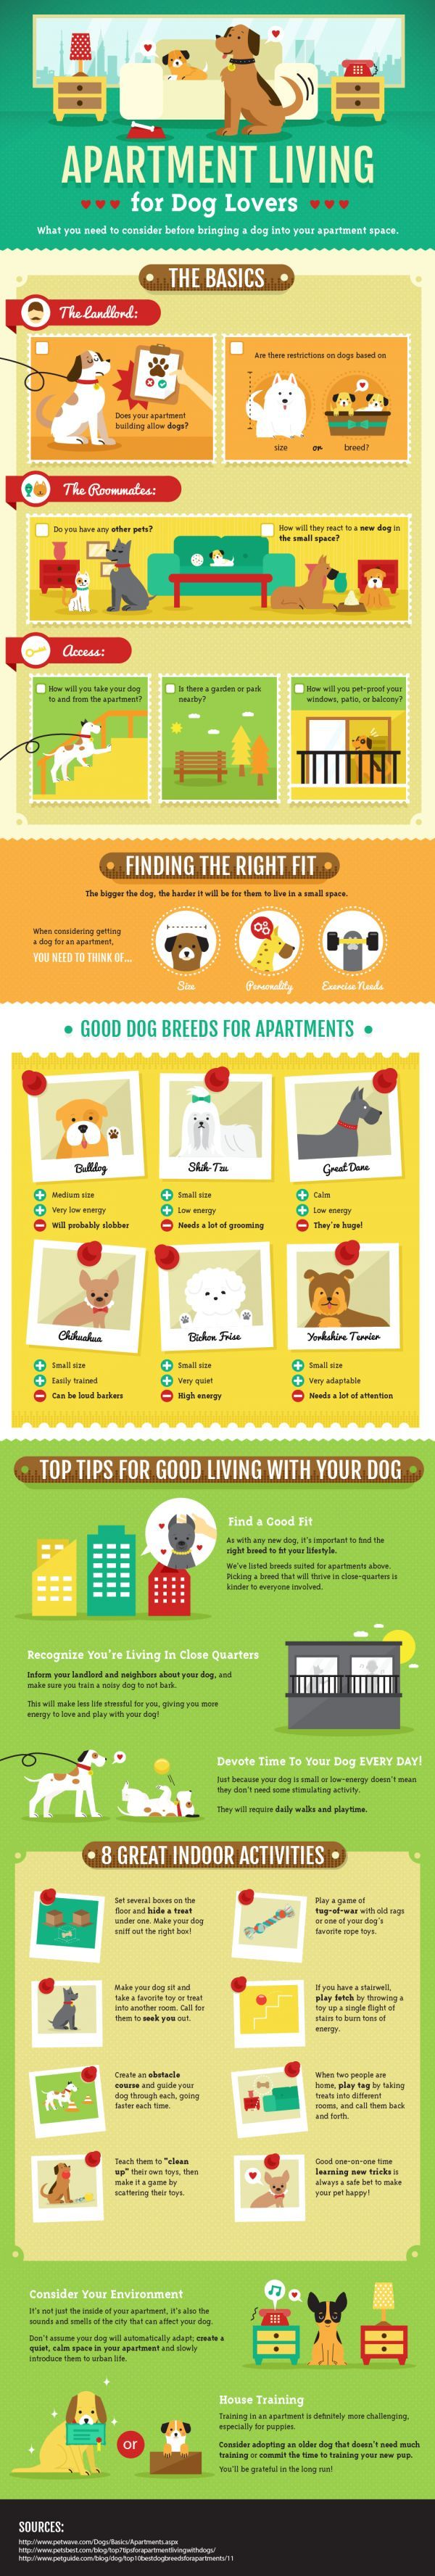 Apartment Living for Dog Lovers ~ a helpful chart!